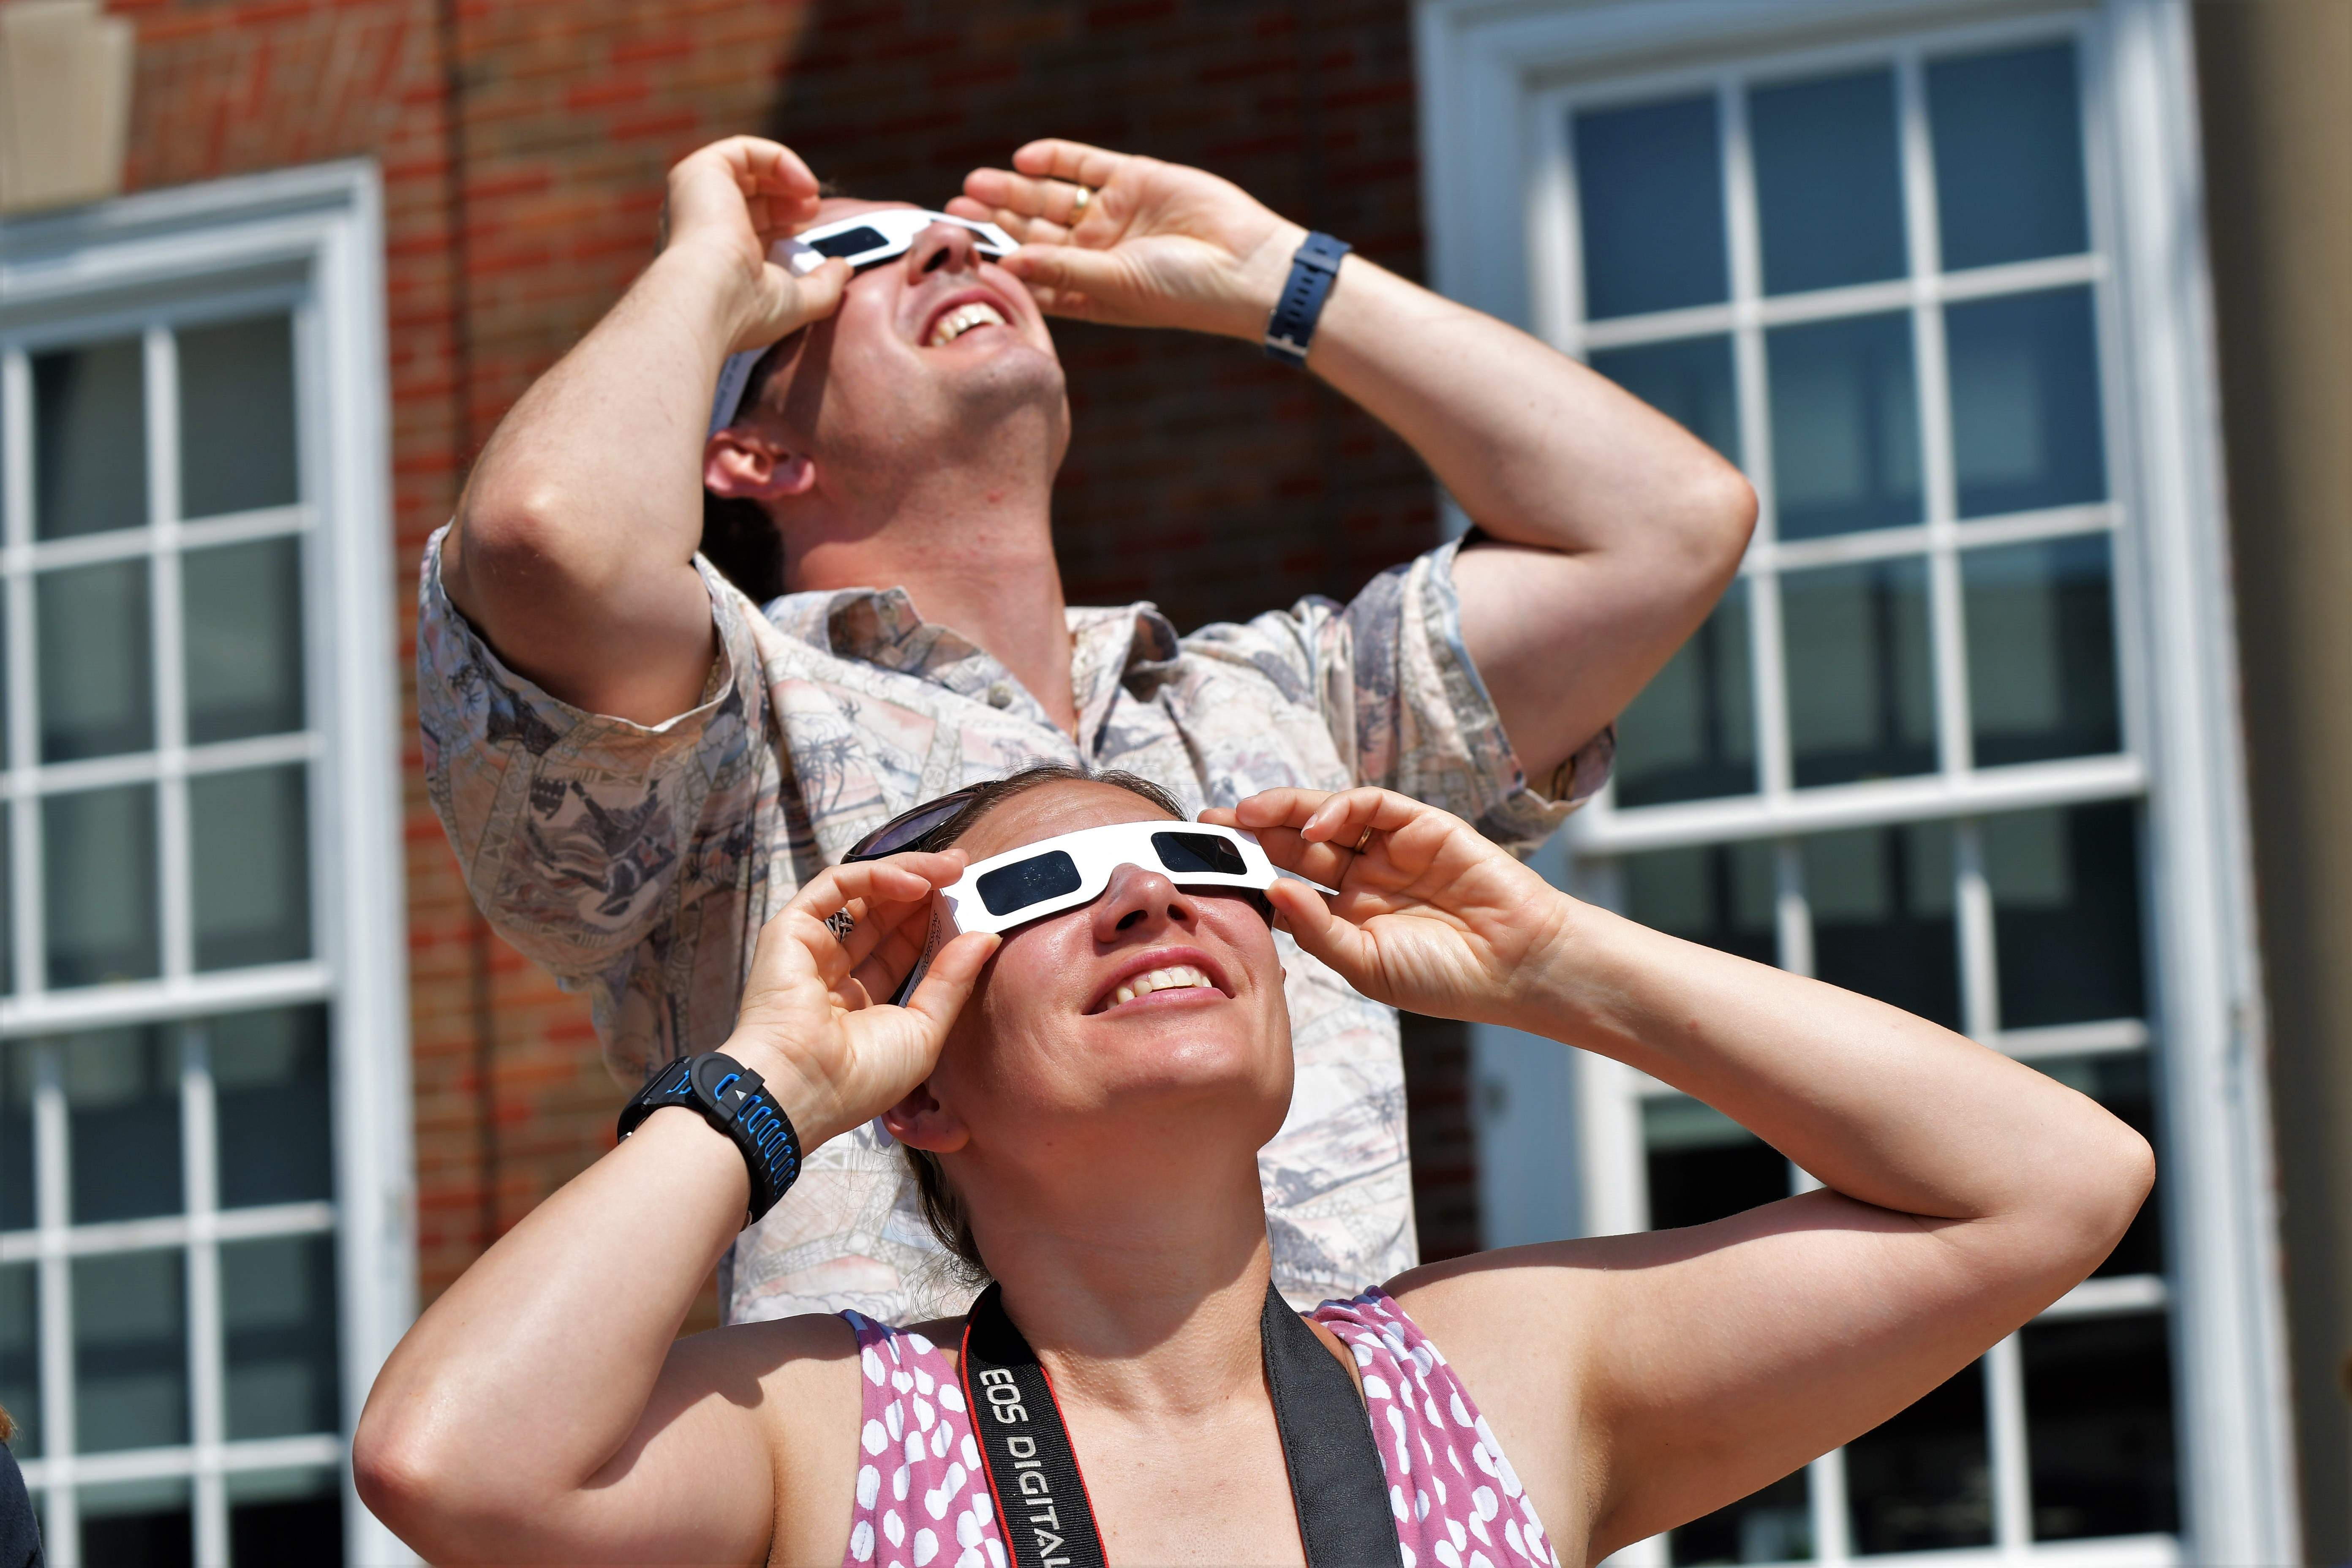 Spectators at the Independence Square view the eclipse at about 80 percent of totality. [David M. Rainey/Special to The Examiner]